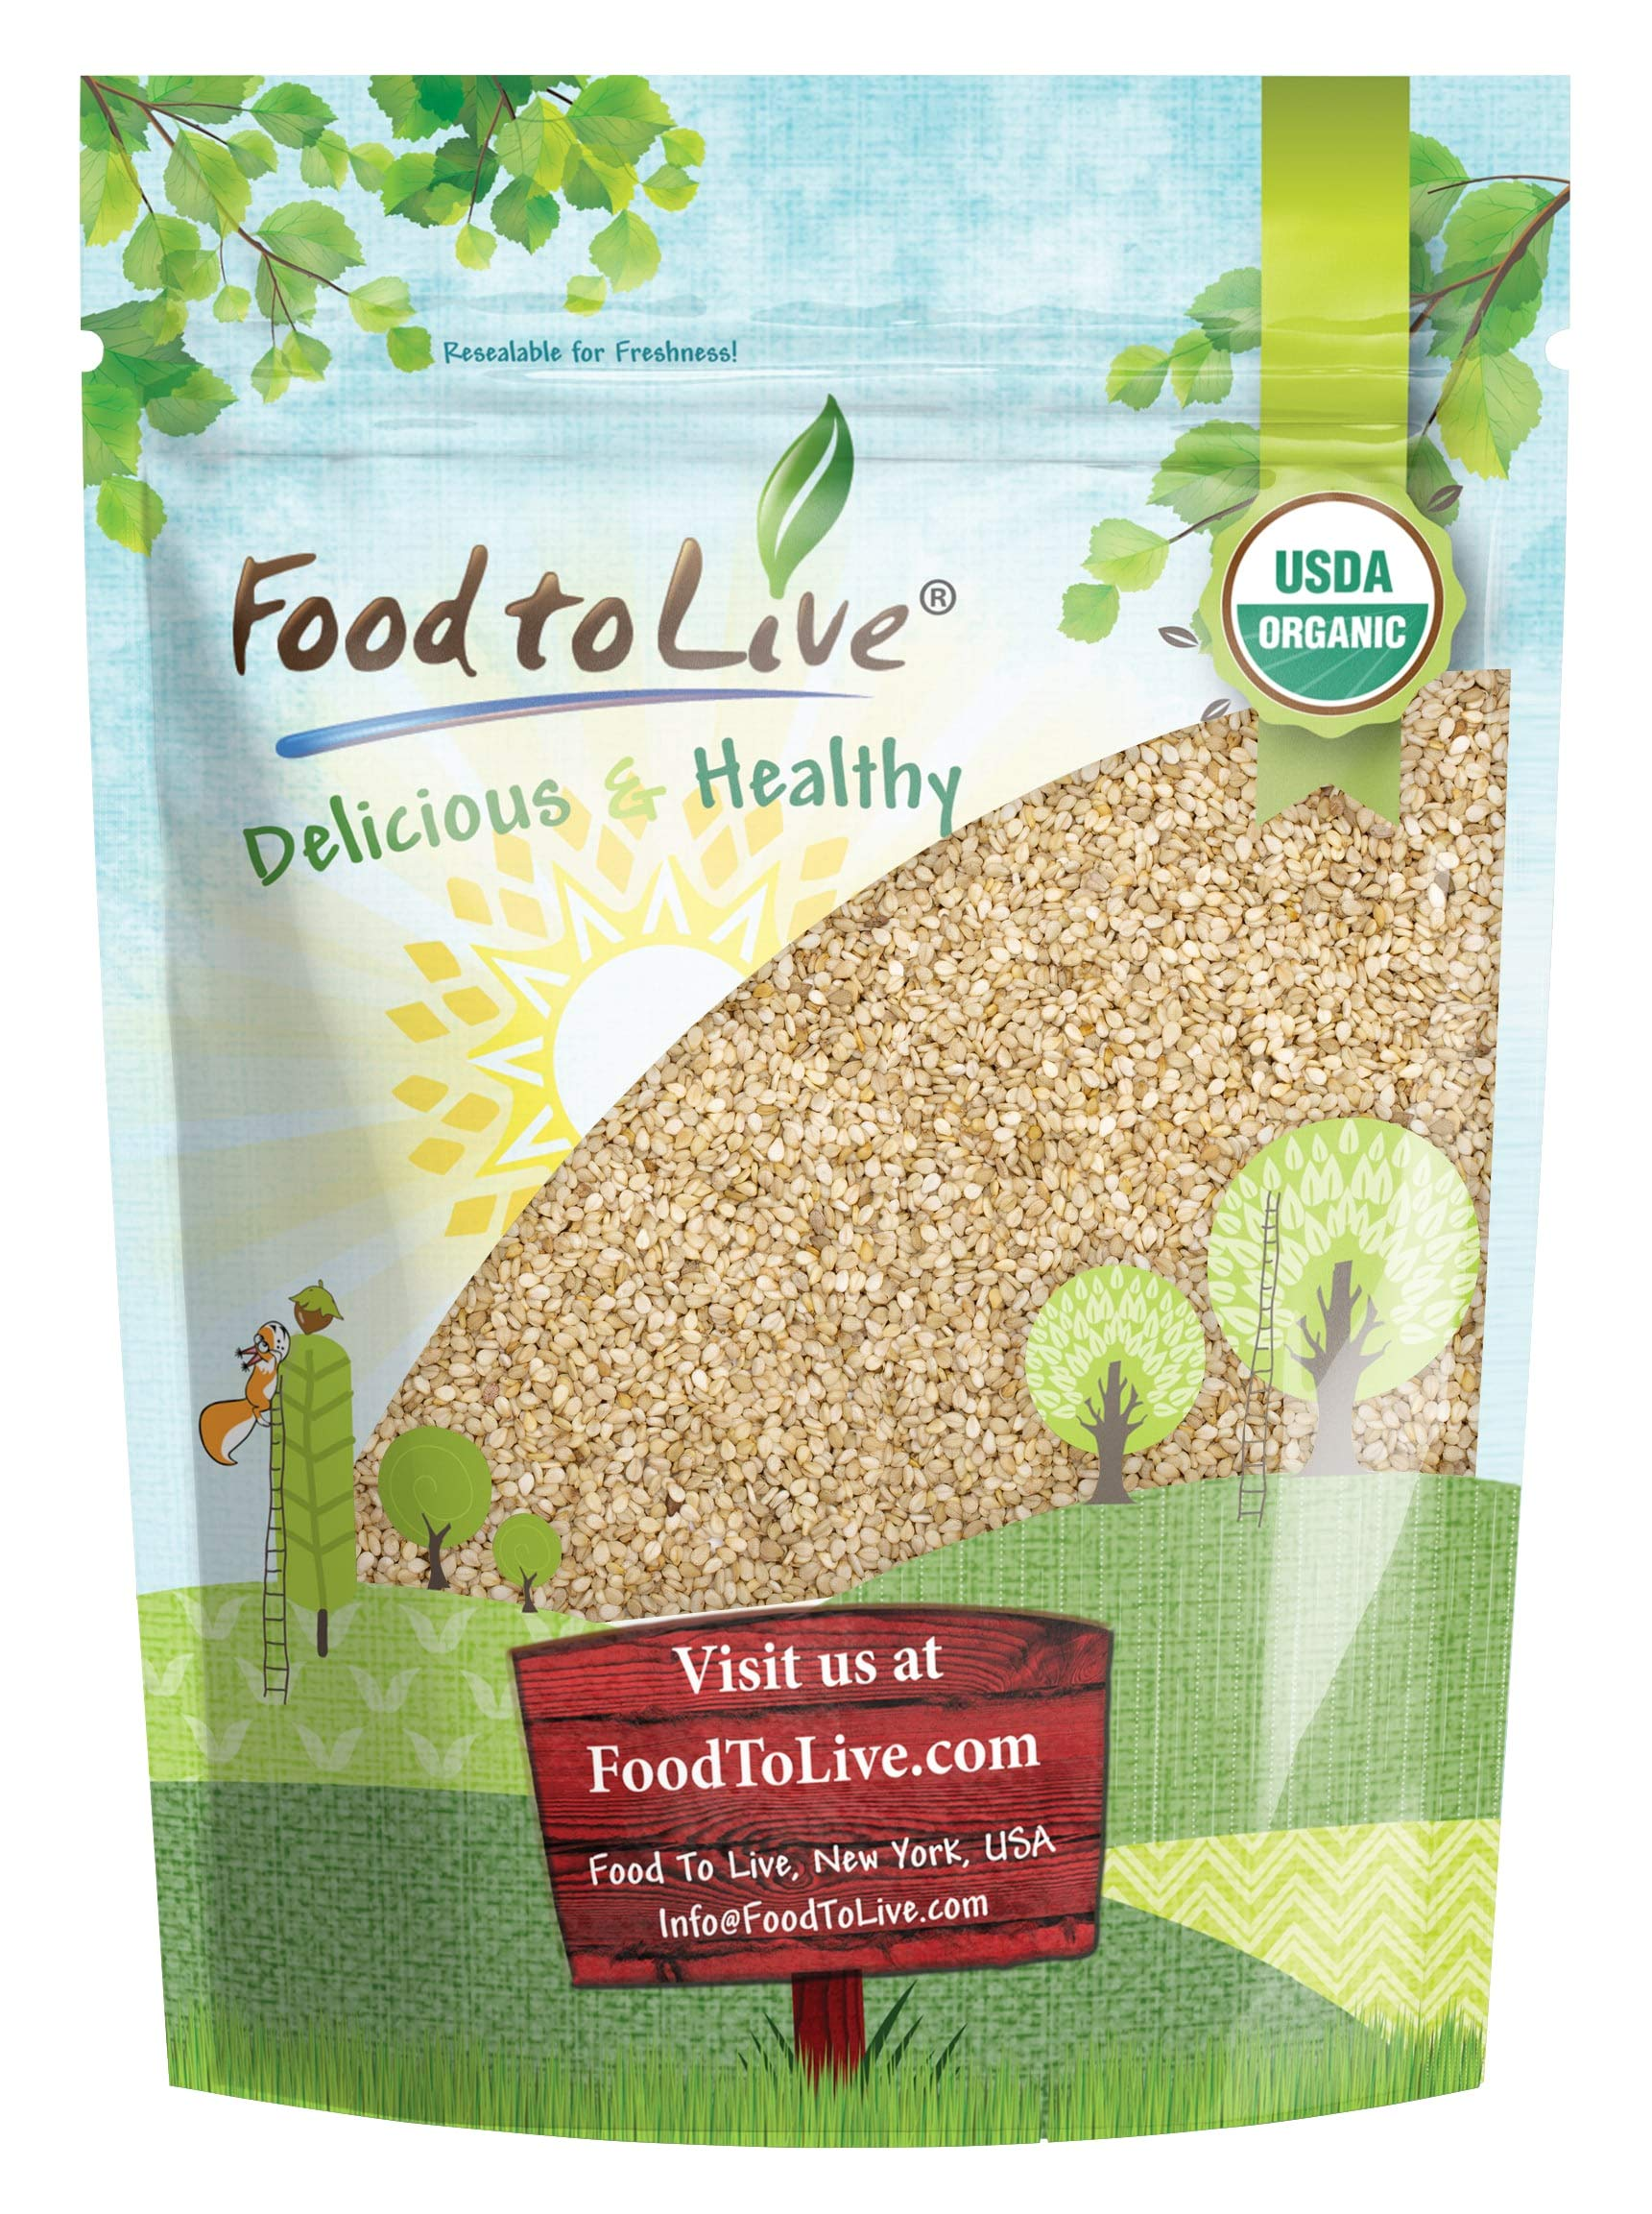 Organic Unhulled Sesame Seeds, 1 Pound — Natural, Whole, White, Non-GMO, Raw, Kosher, Bulk, Rich in Calcium, Iron, and Fiber, Great for Baking